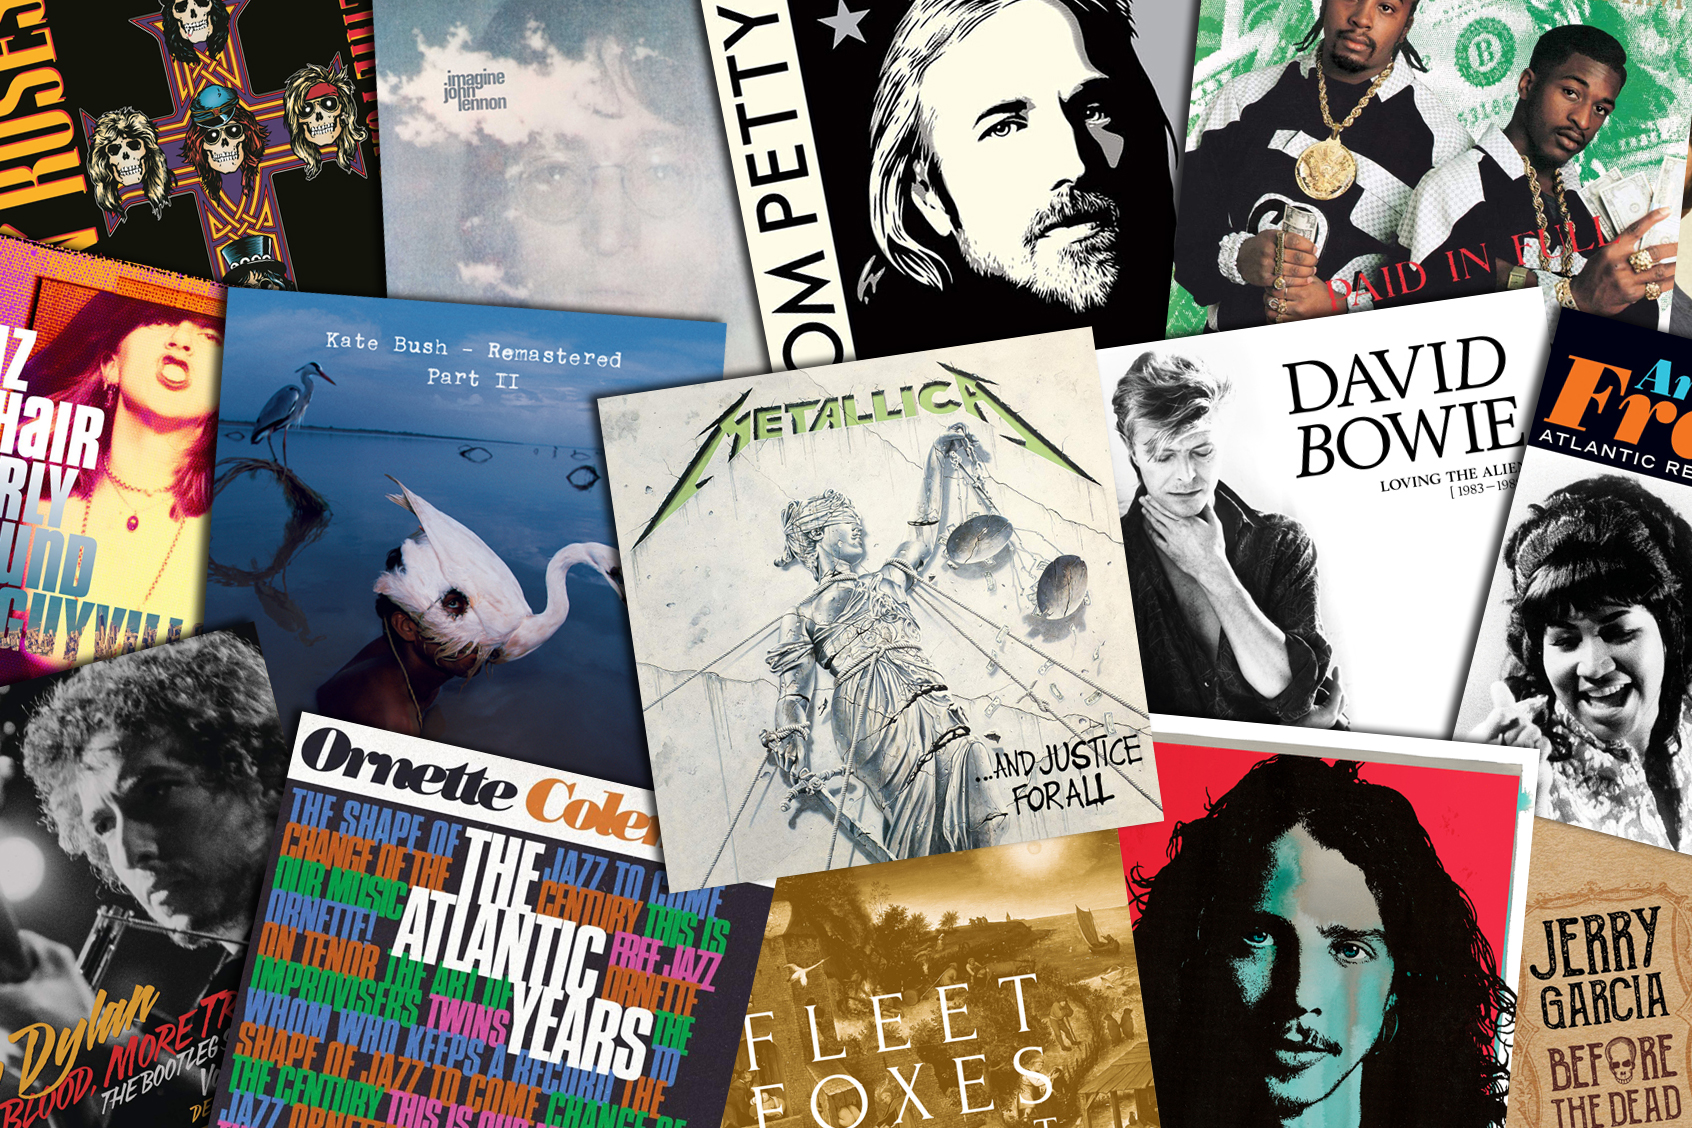 cd143a0ca 2018 was a uniquely good year for huge archival sets. There were 50th  anniversary deluxe reissues of classics like Electric Ladyland